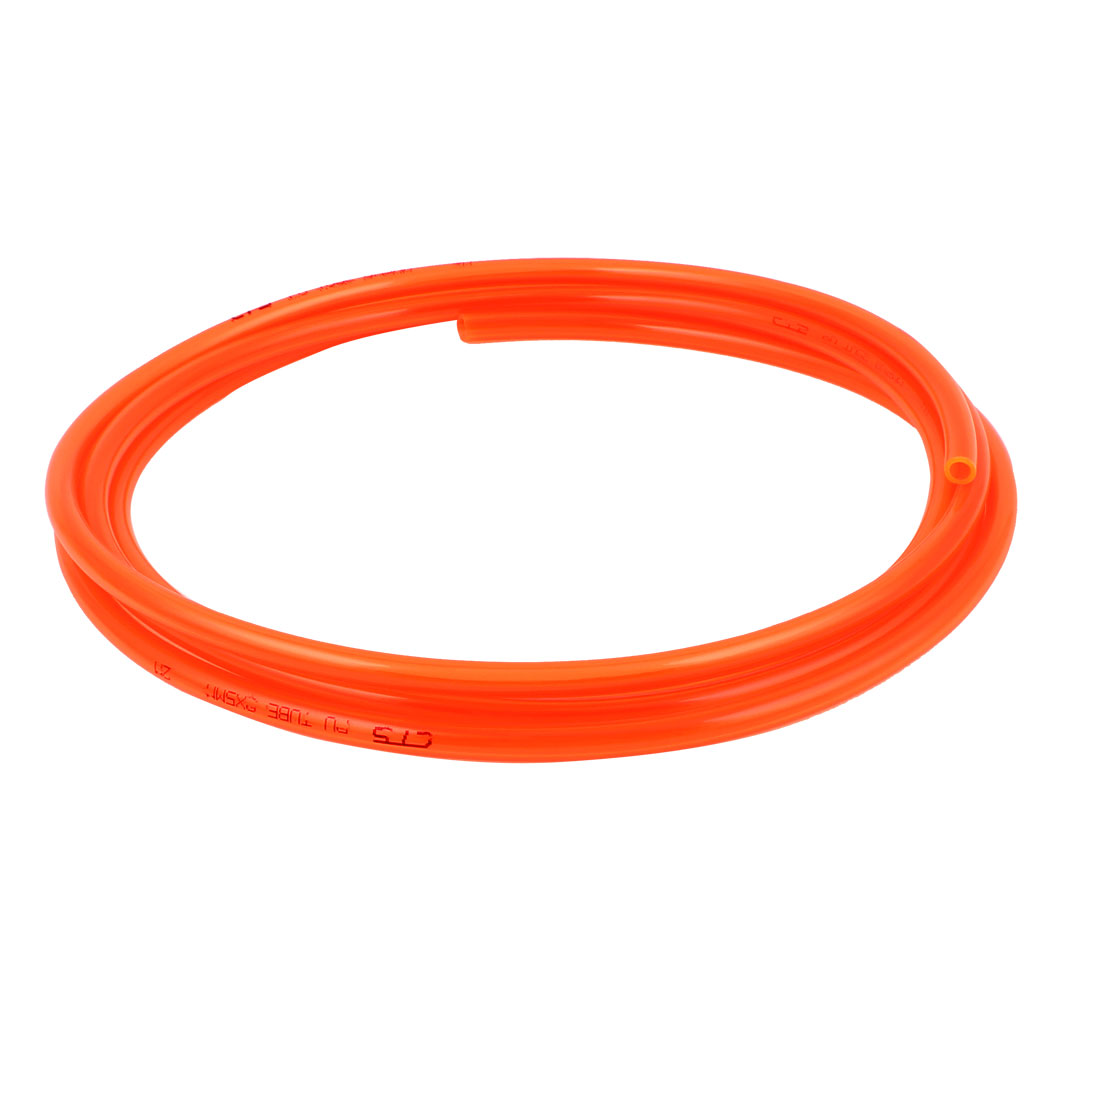 8mm x 5mm Clear Orange Fleaxible PU Tube Pneumatic Polyurethane Hose 3 Meters Long